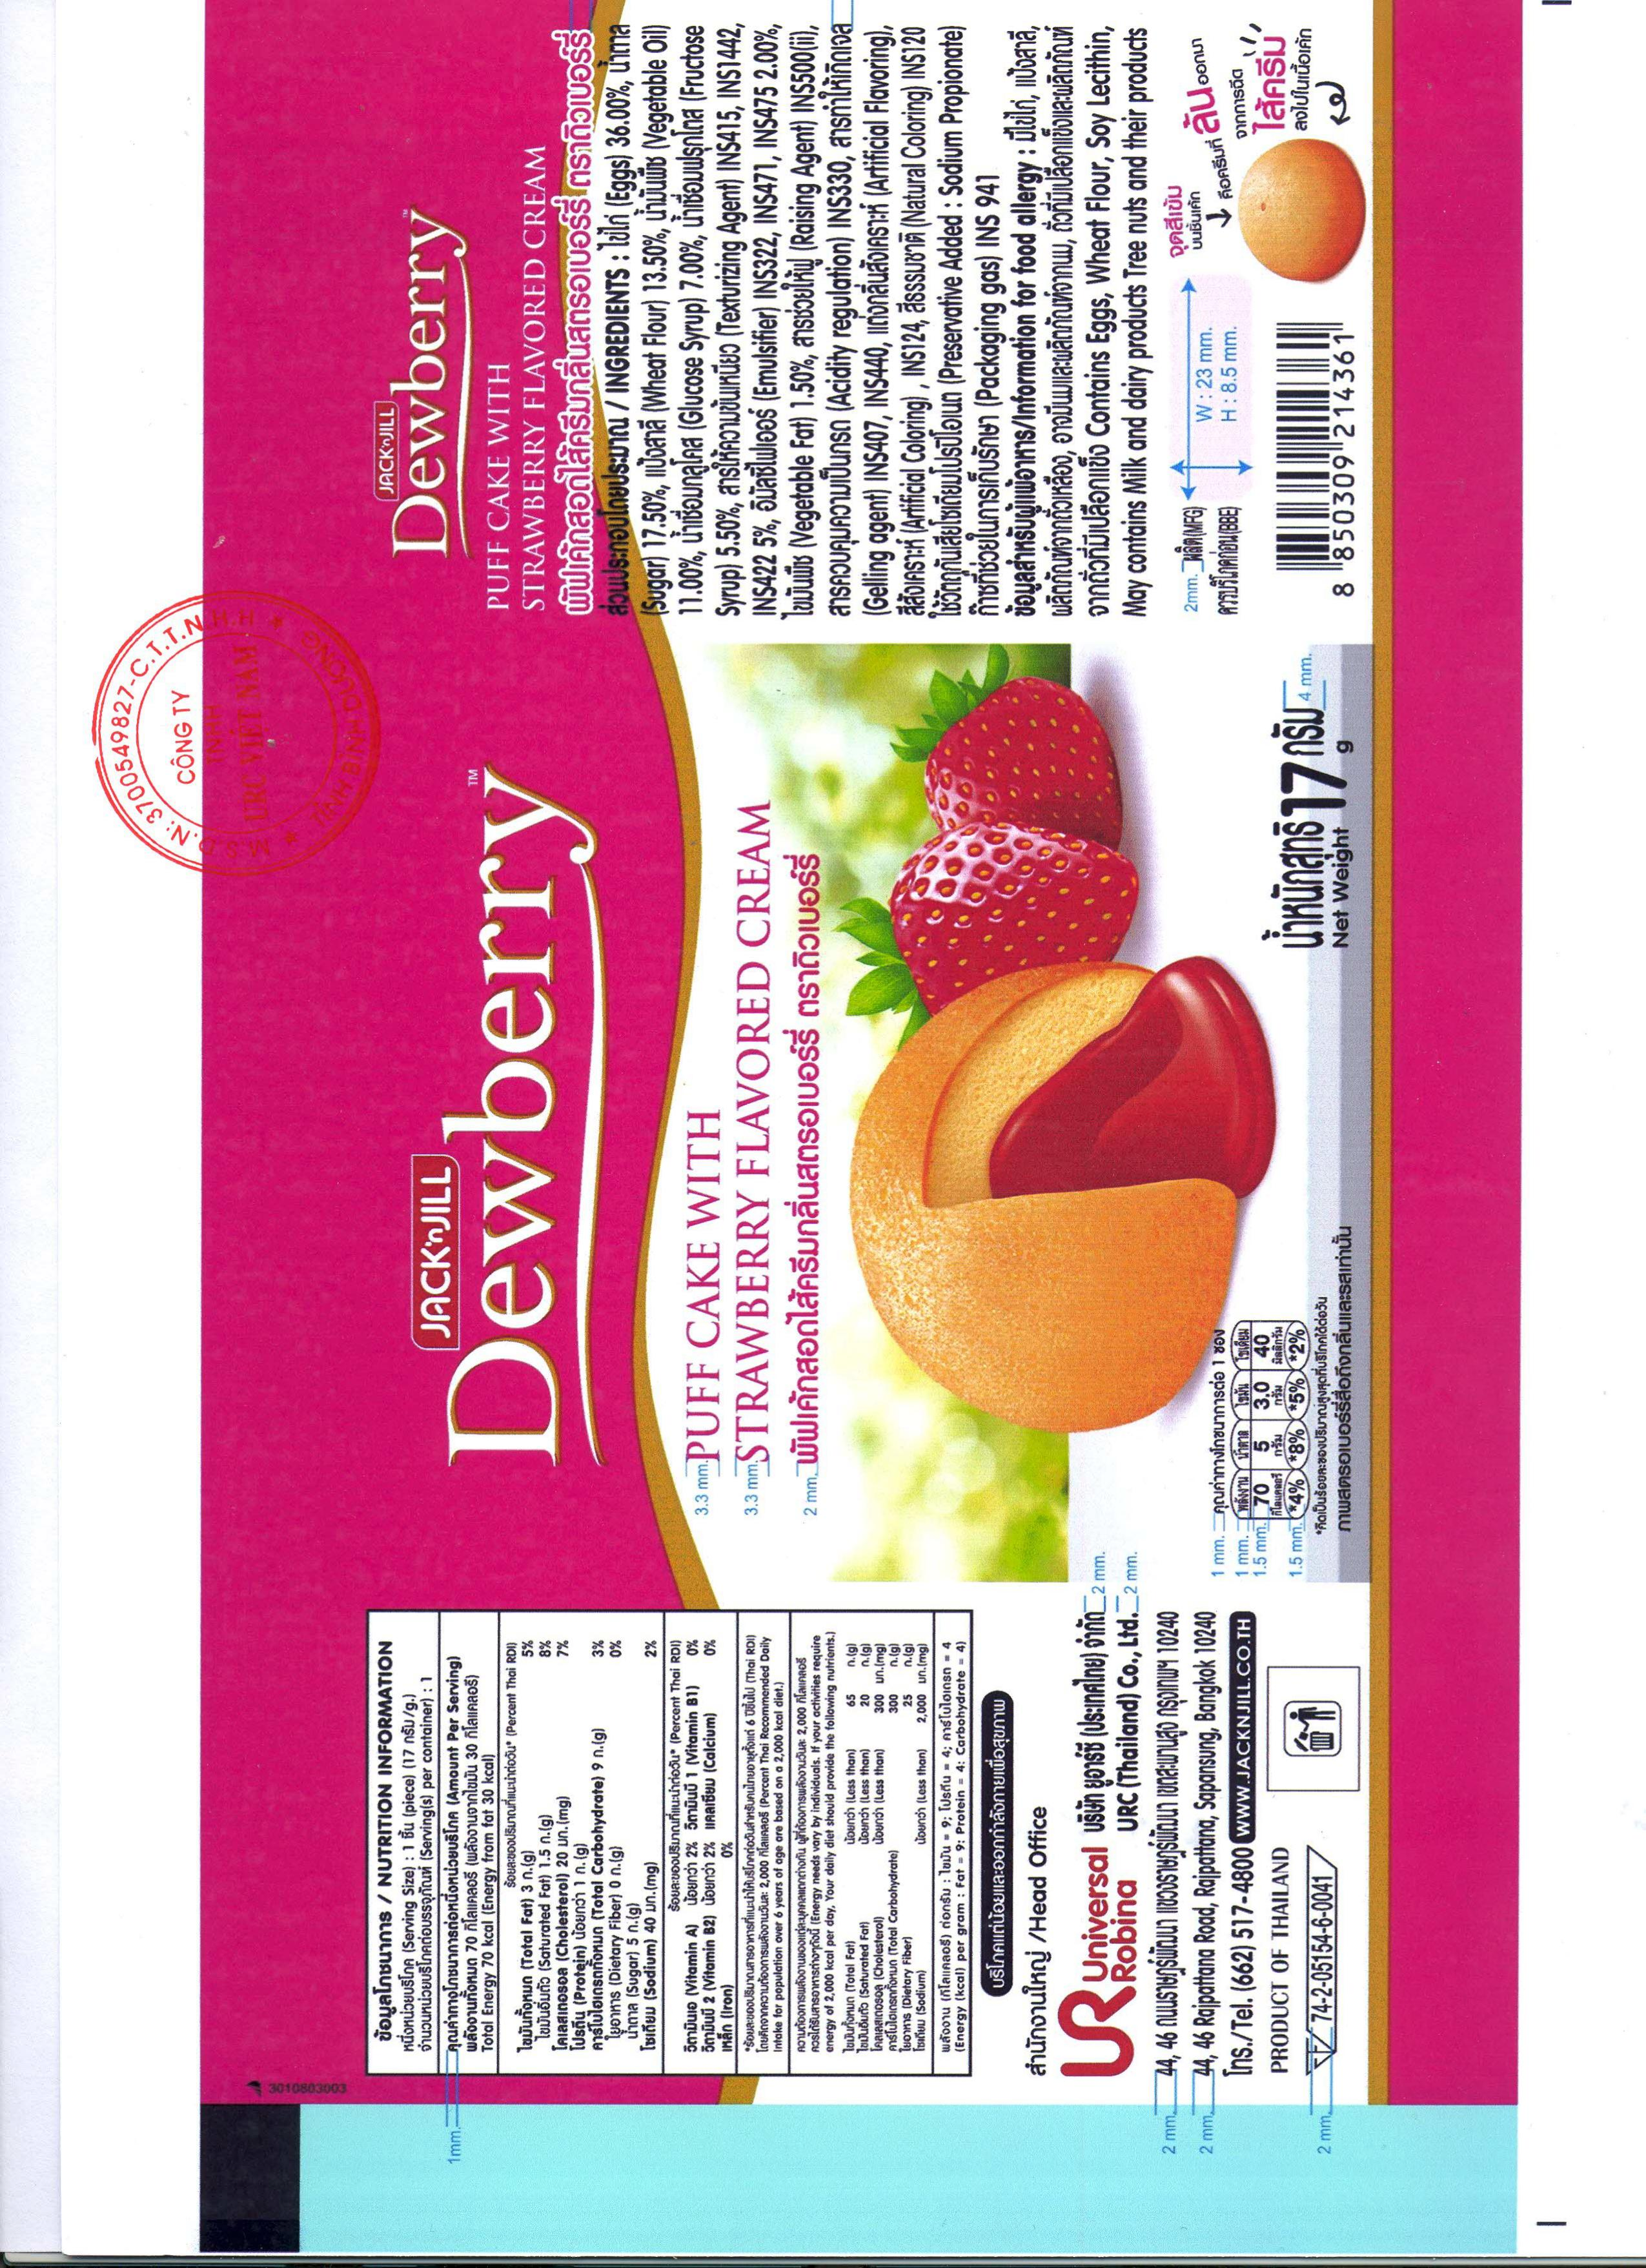 PRODUCT ANNOUNCEMENT DEWBERRY PUFF CAKE WITH STRAWBERRY FLAVORED CREAM